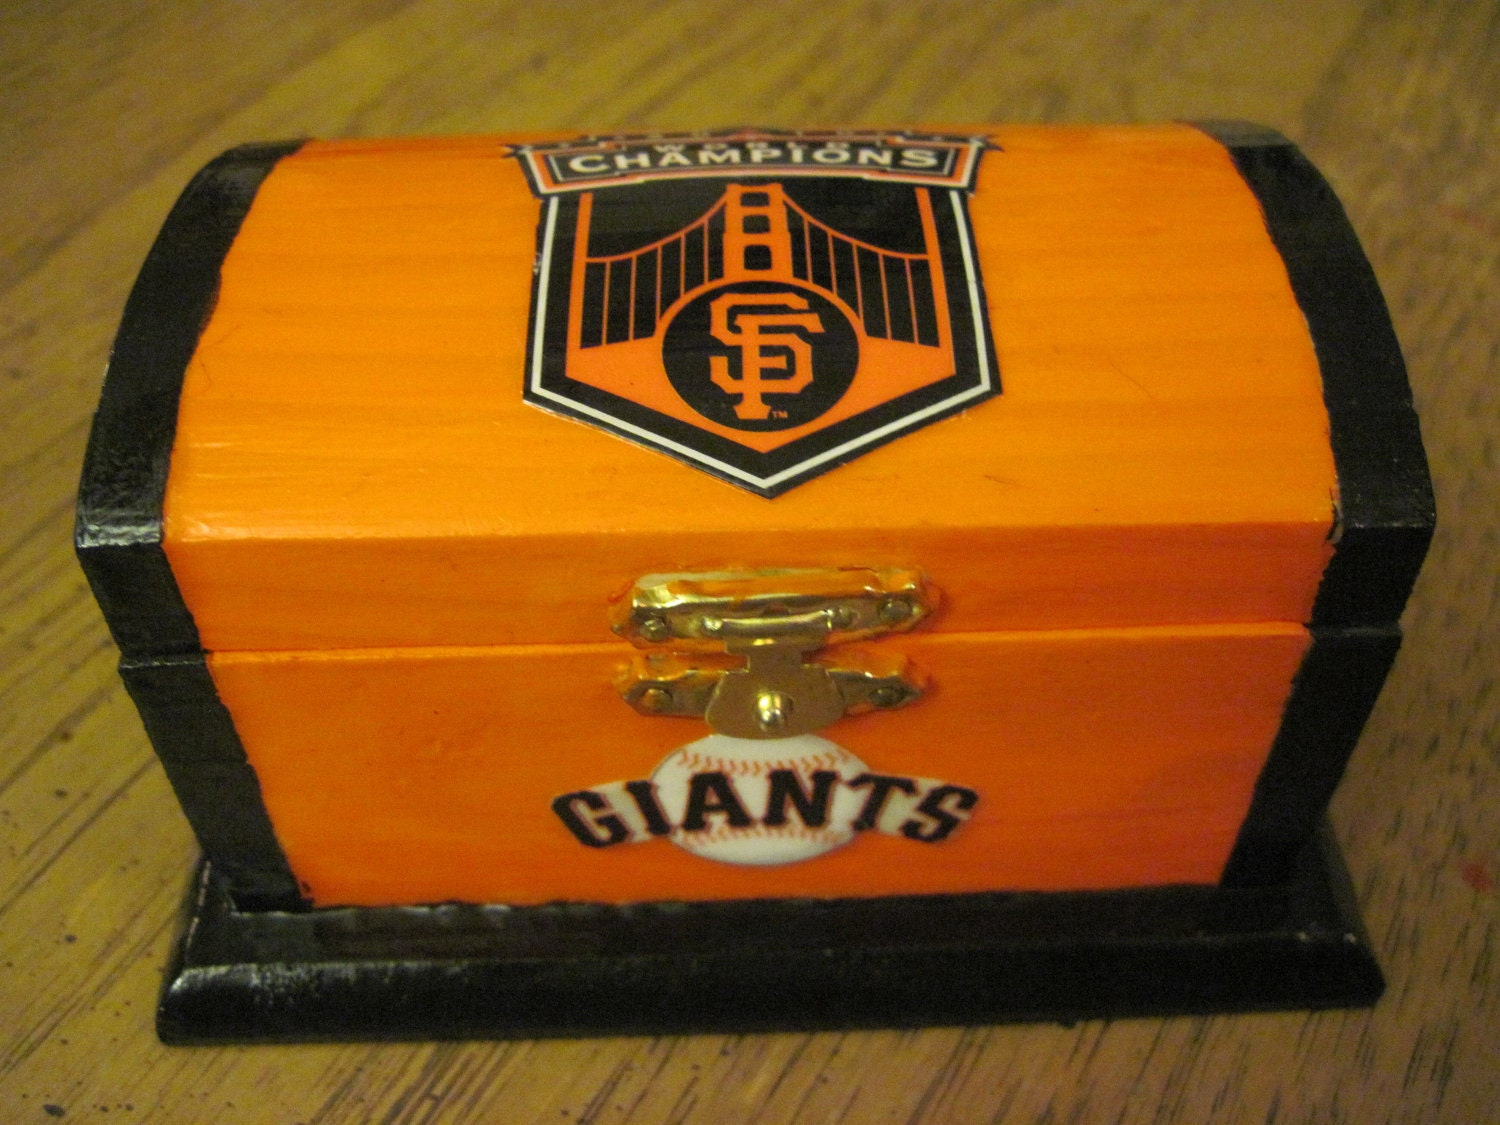 San francisco giants handmade wooden trinket box for San francisco handmade jewelry